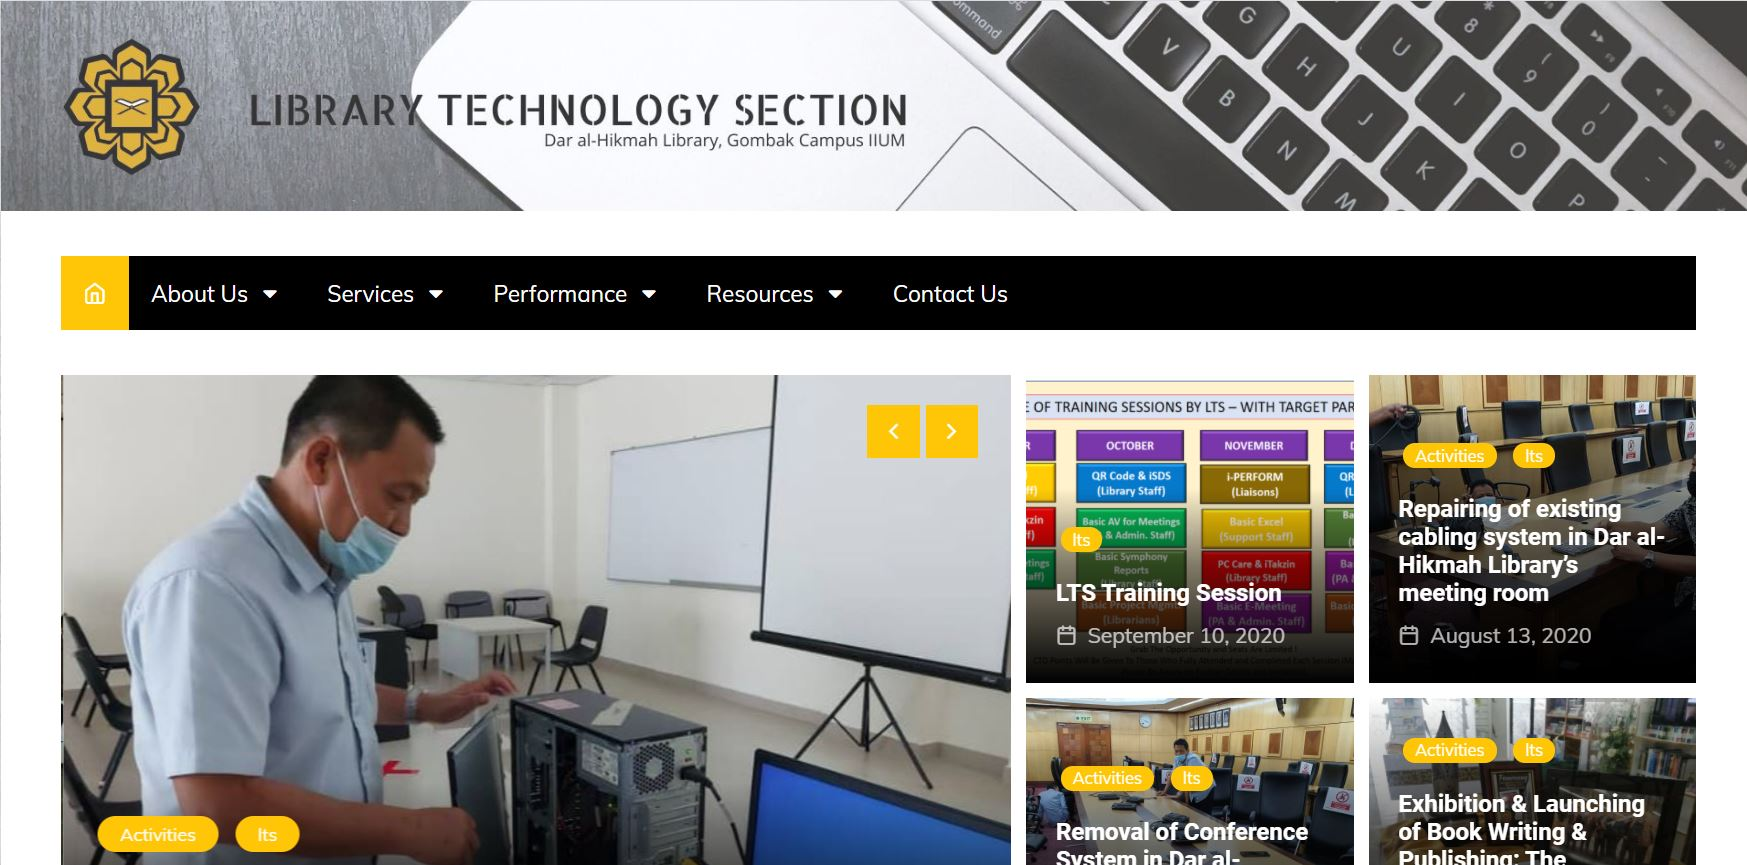 LIBRARY TECHNOLOGY SECTION